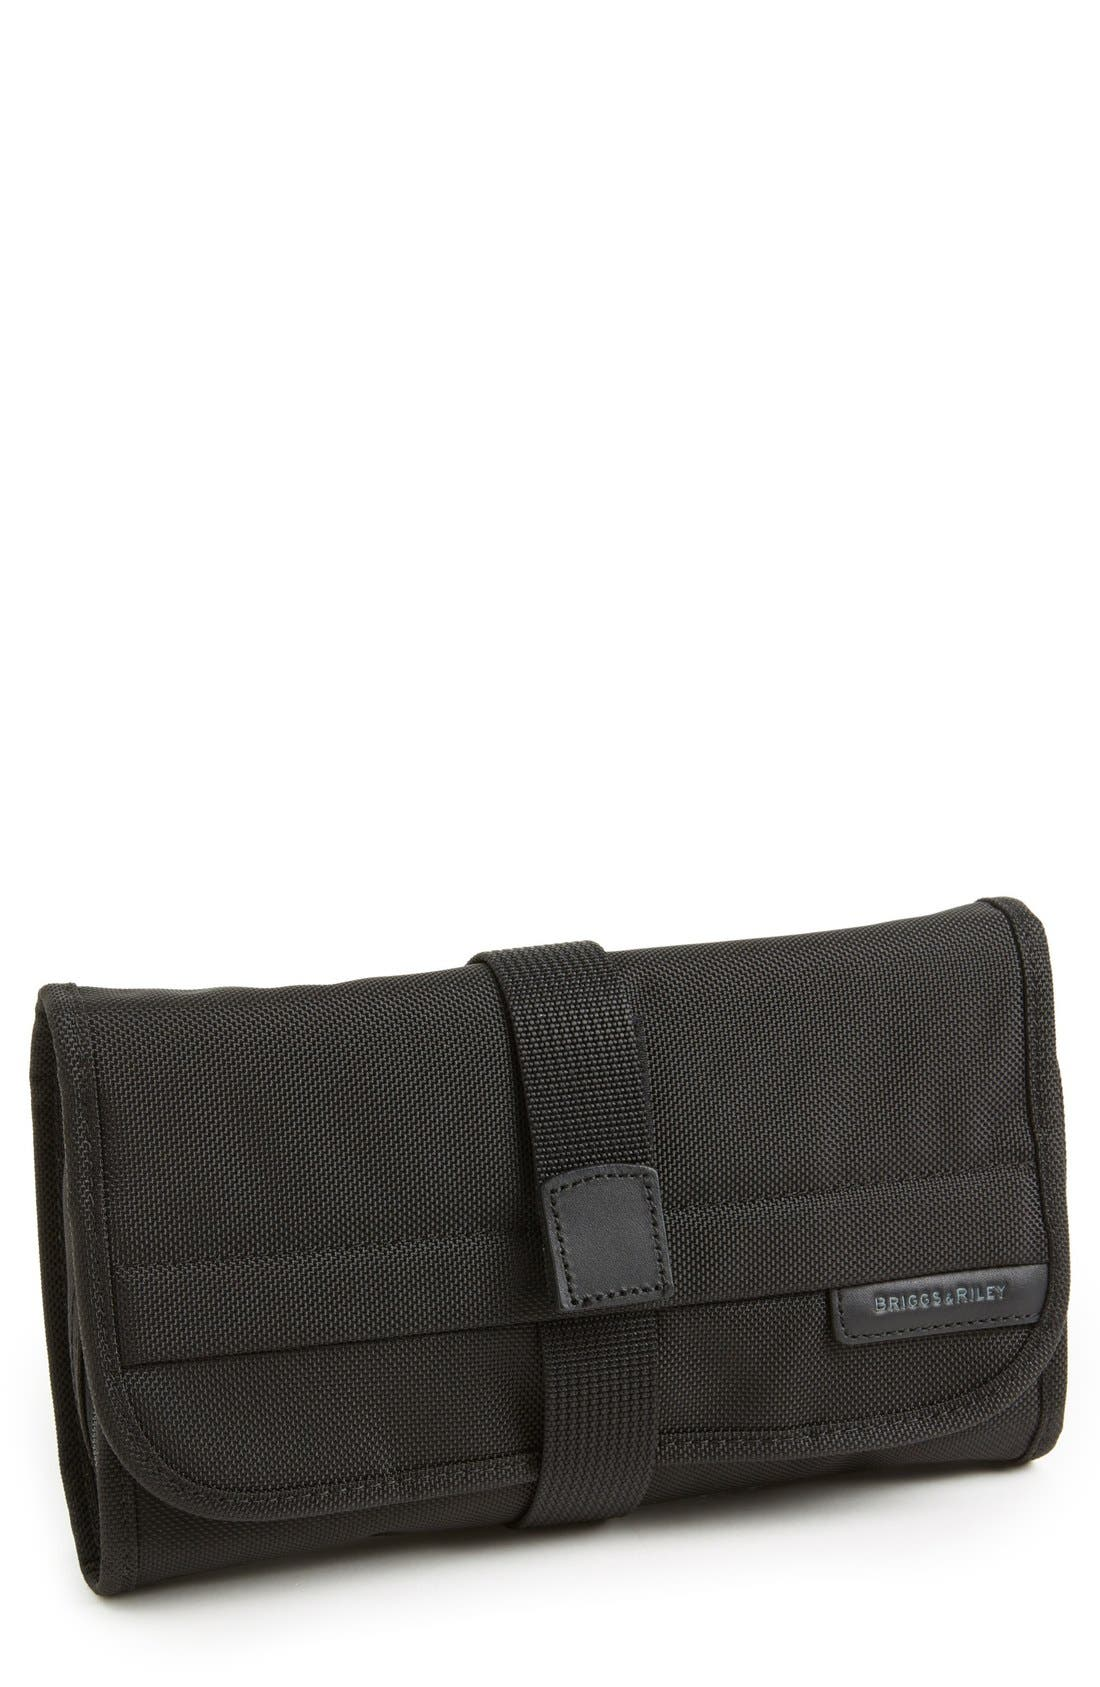 Briggs & Riley 'Baseline' Compact Trifold Toiletry Kit